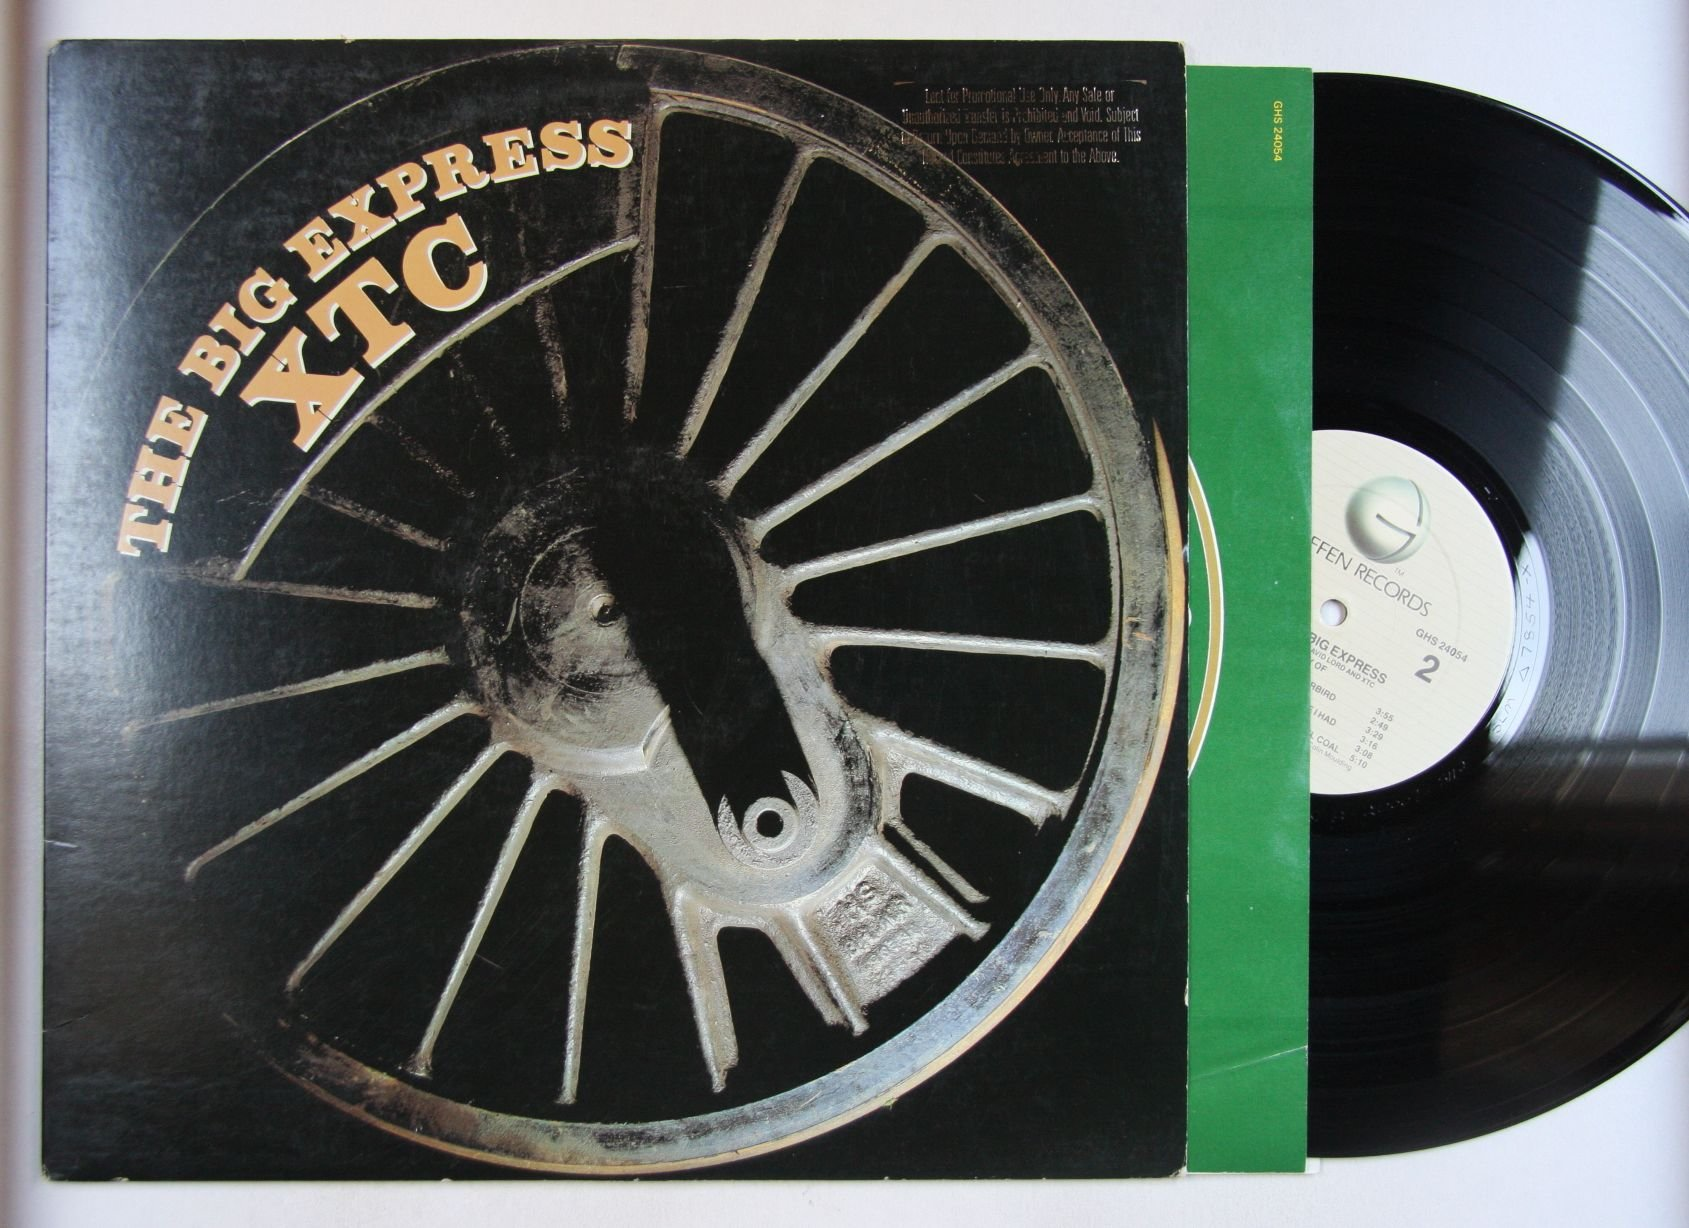 Xtc Big Express Records, LPs, Vinyl and CDs - MusicStack